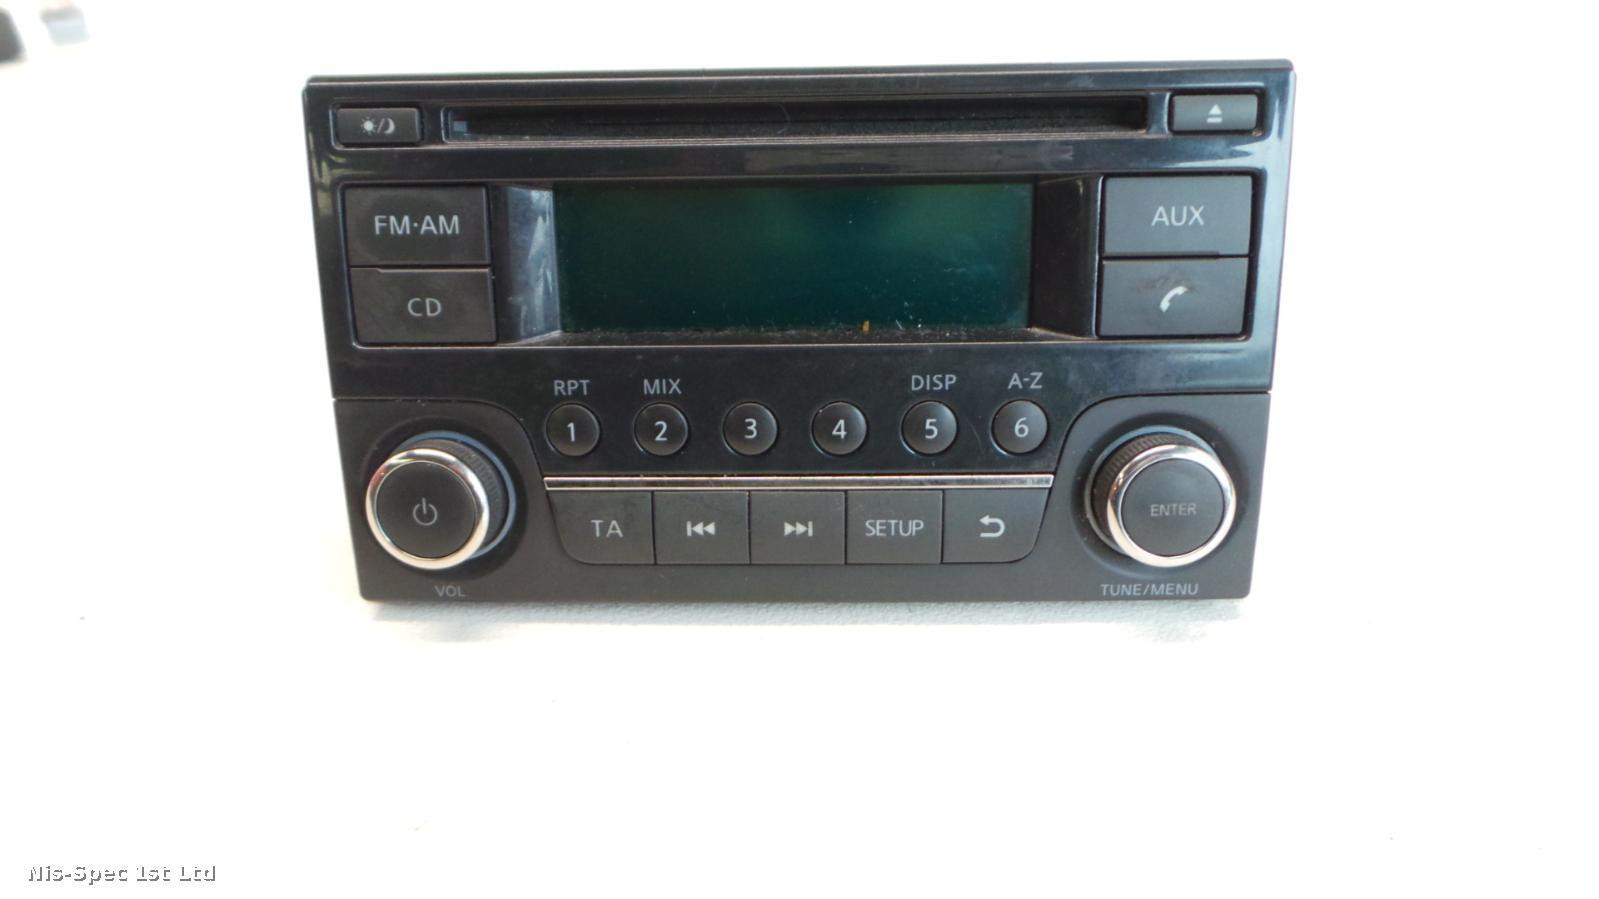 NISSAN NV200 RADIO CD PLAYER PART NUMBER 28185 BH30B